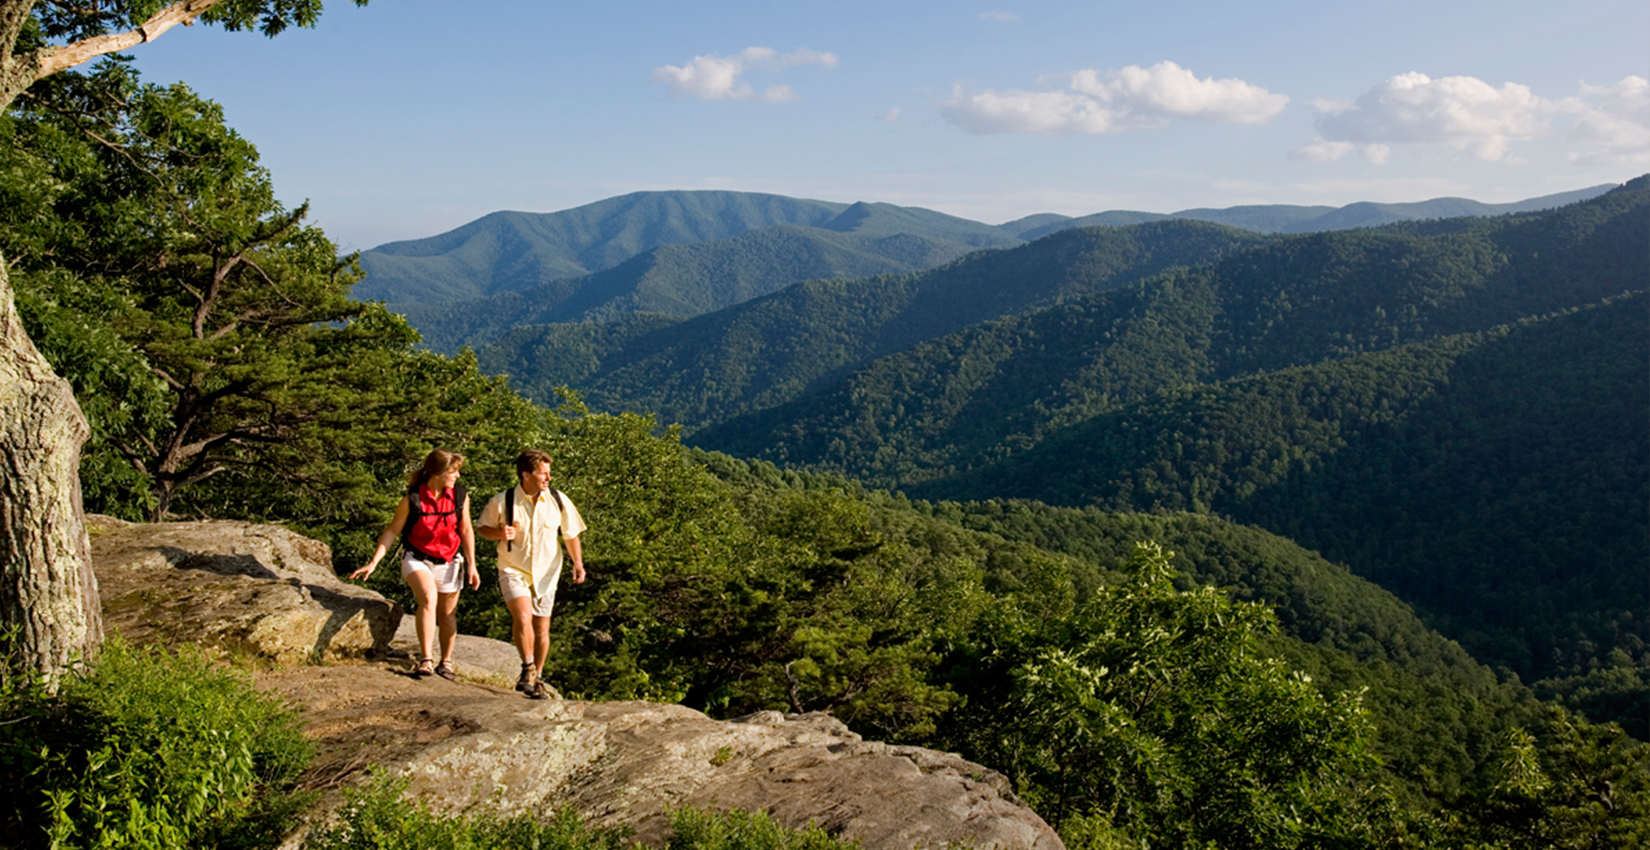 Hike Virginia's Blue Ridge Mountains